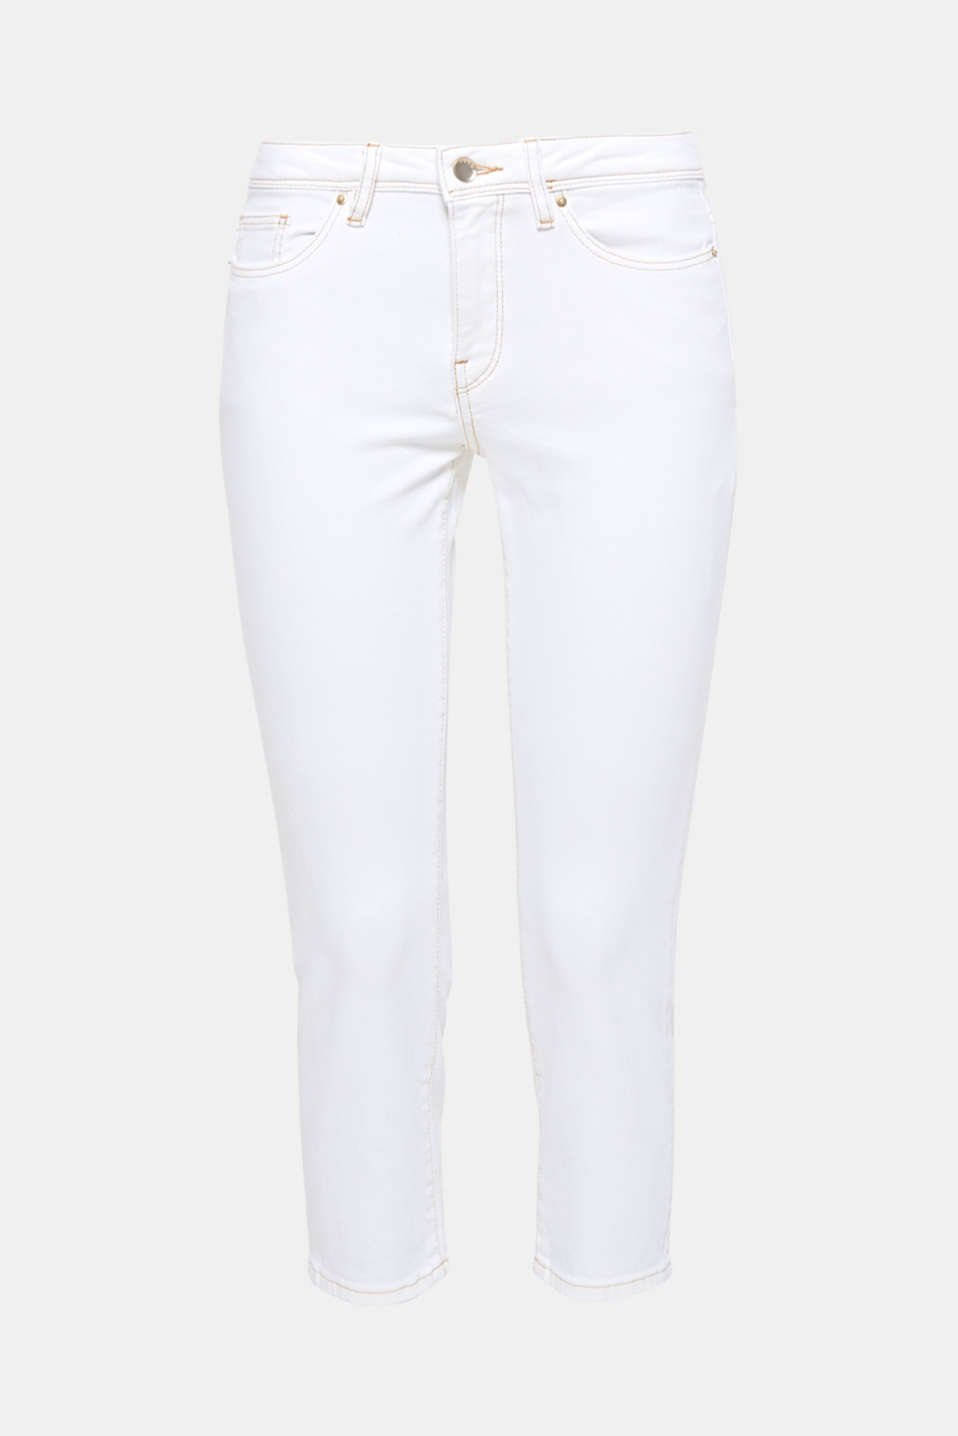 They instantly conjure up a fresh new look and are mega comfy at the same time: these white, ankle-length jeans with beige contrasting stitching and added stretch for comfort.